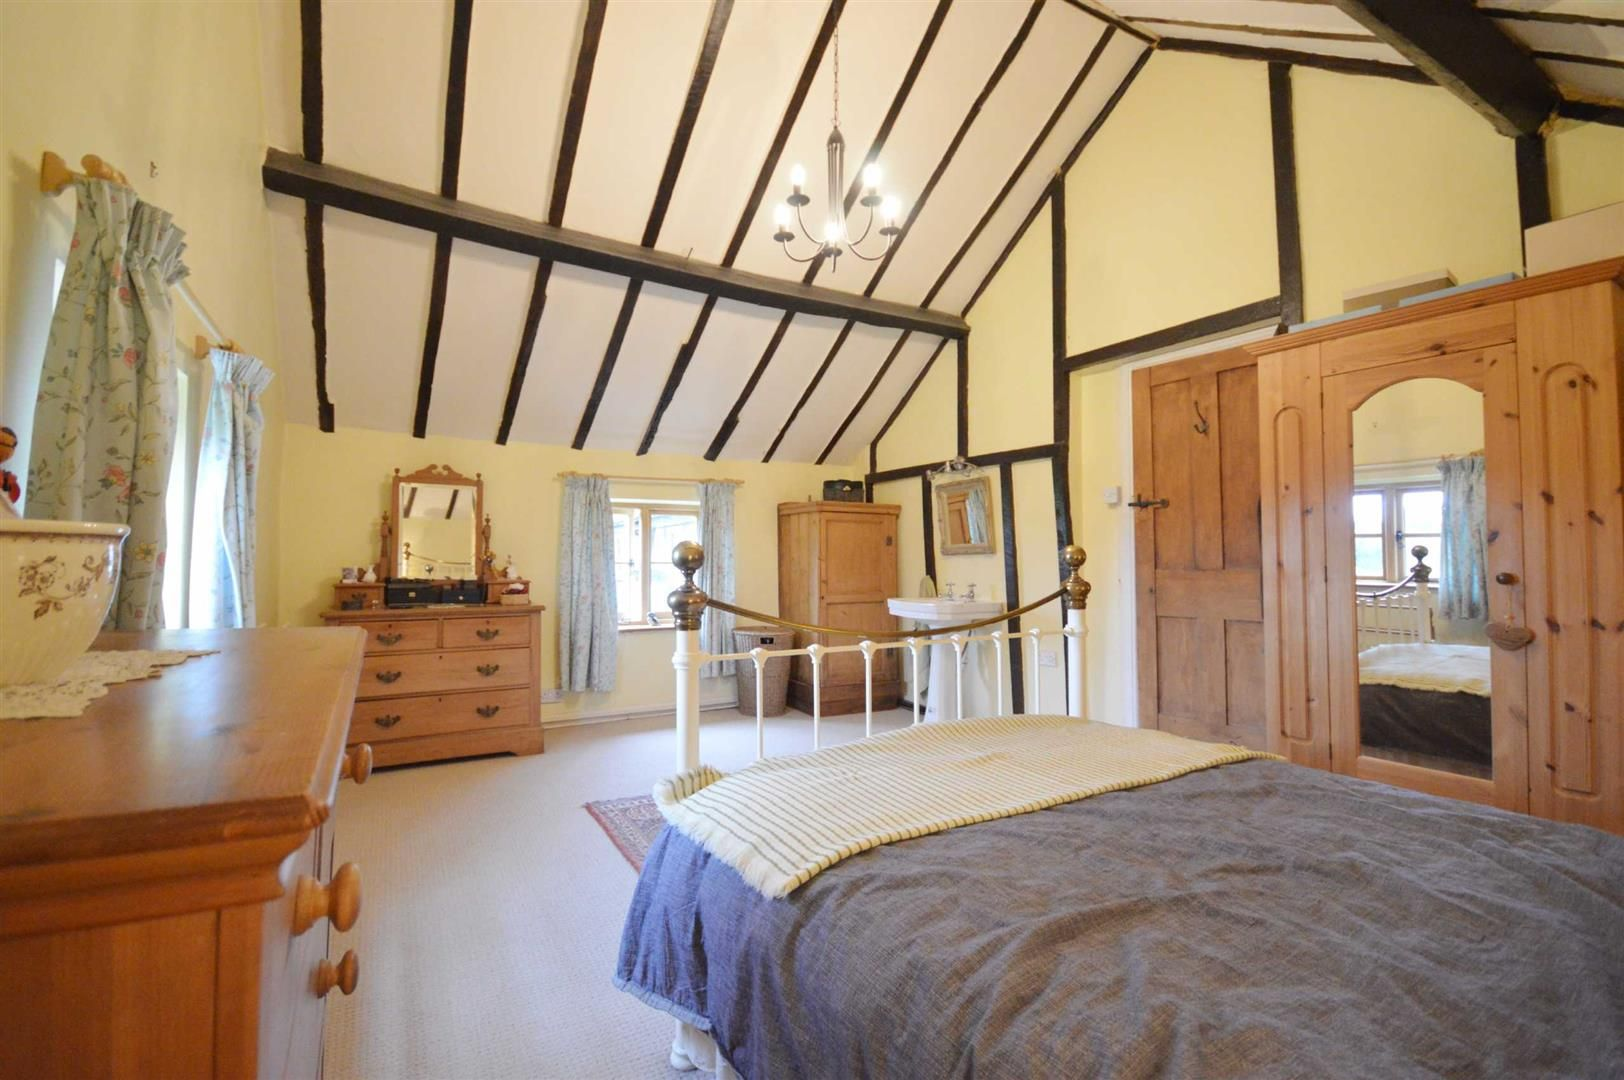 5 bed detached for sale in Marston  - Property Image 11